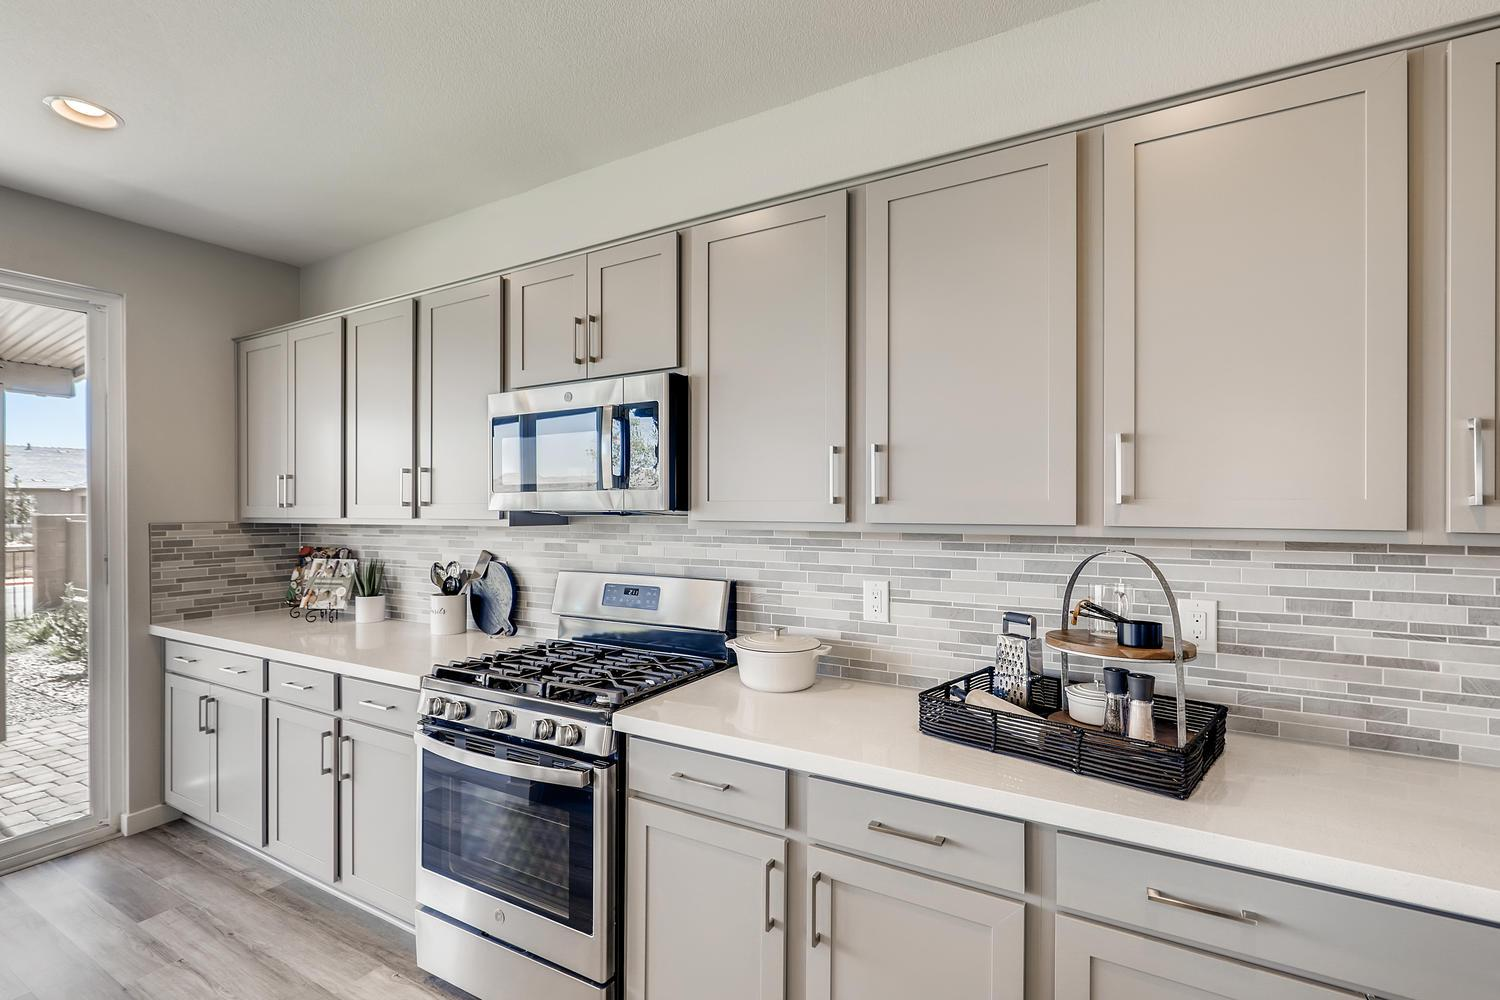 Kitchen featured in the Magnolia at Silverleaf By Taylor Morrison in Las Vegas, NV